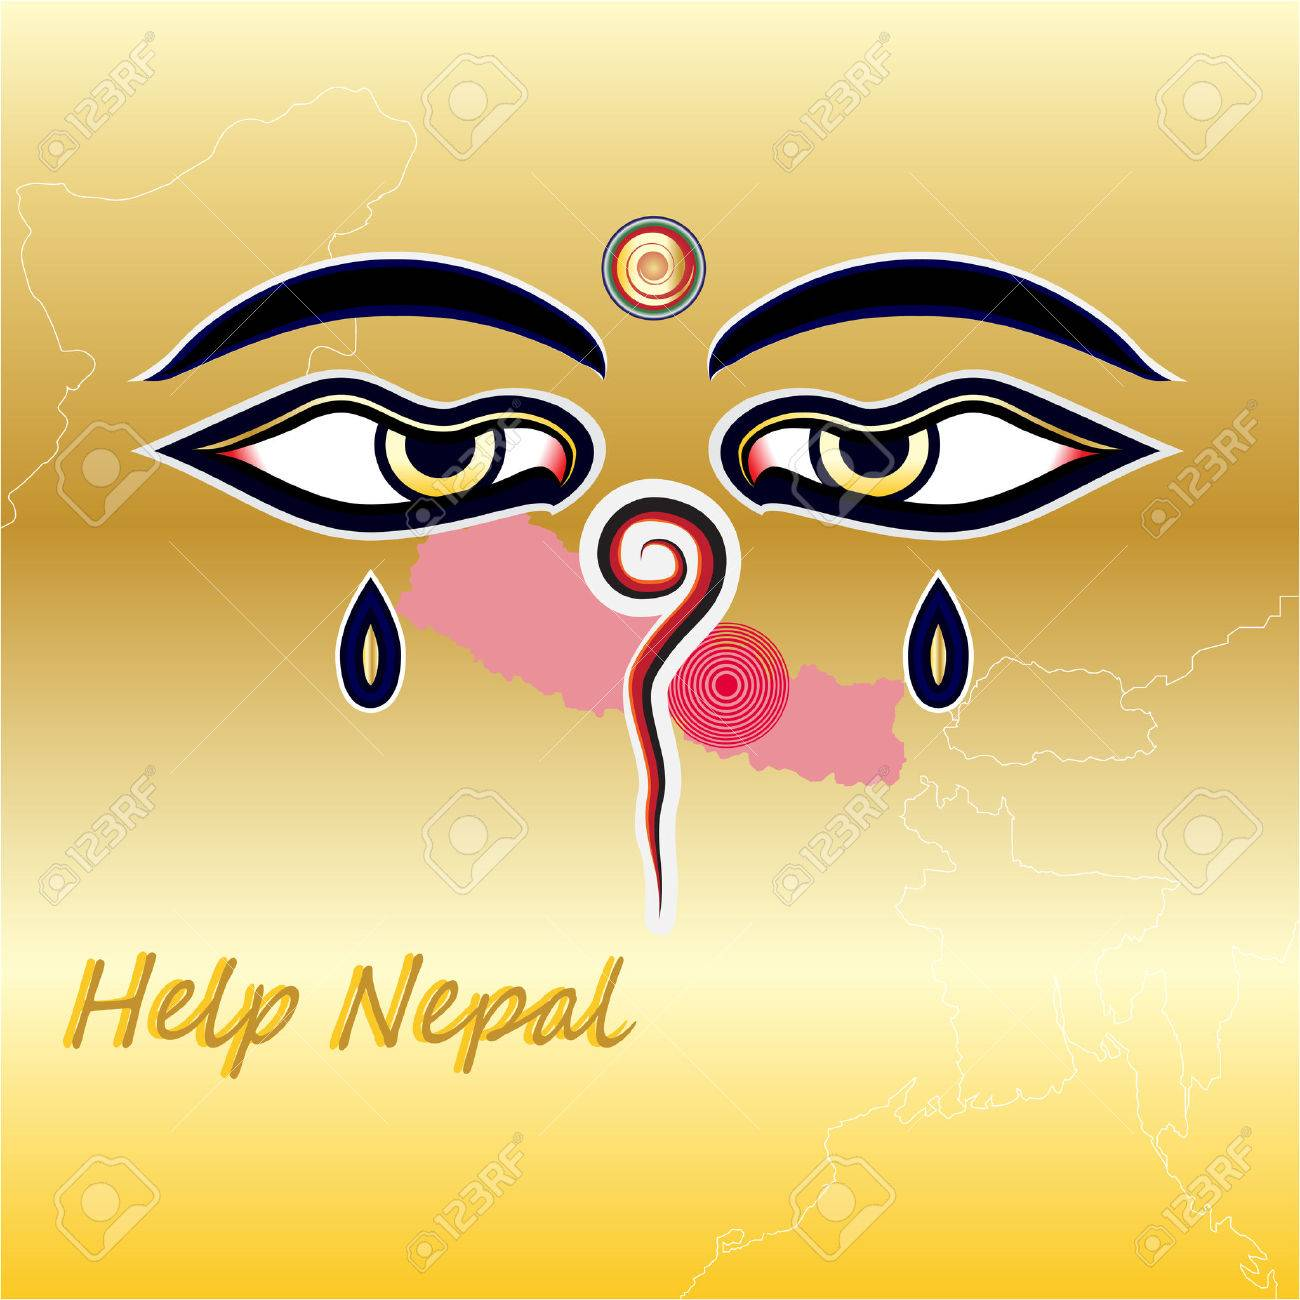 Help nepal with map and Wisdom Eyes